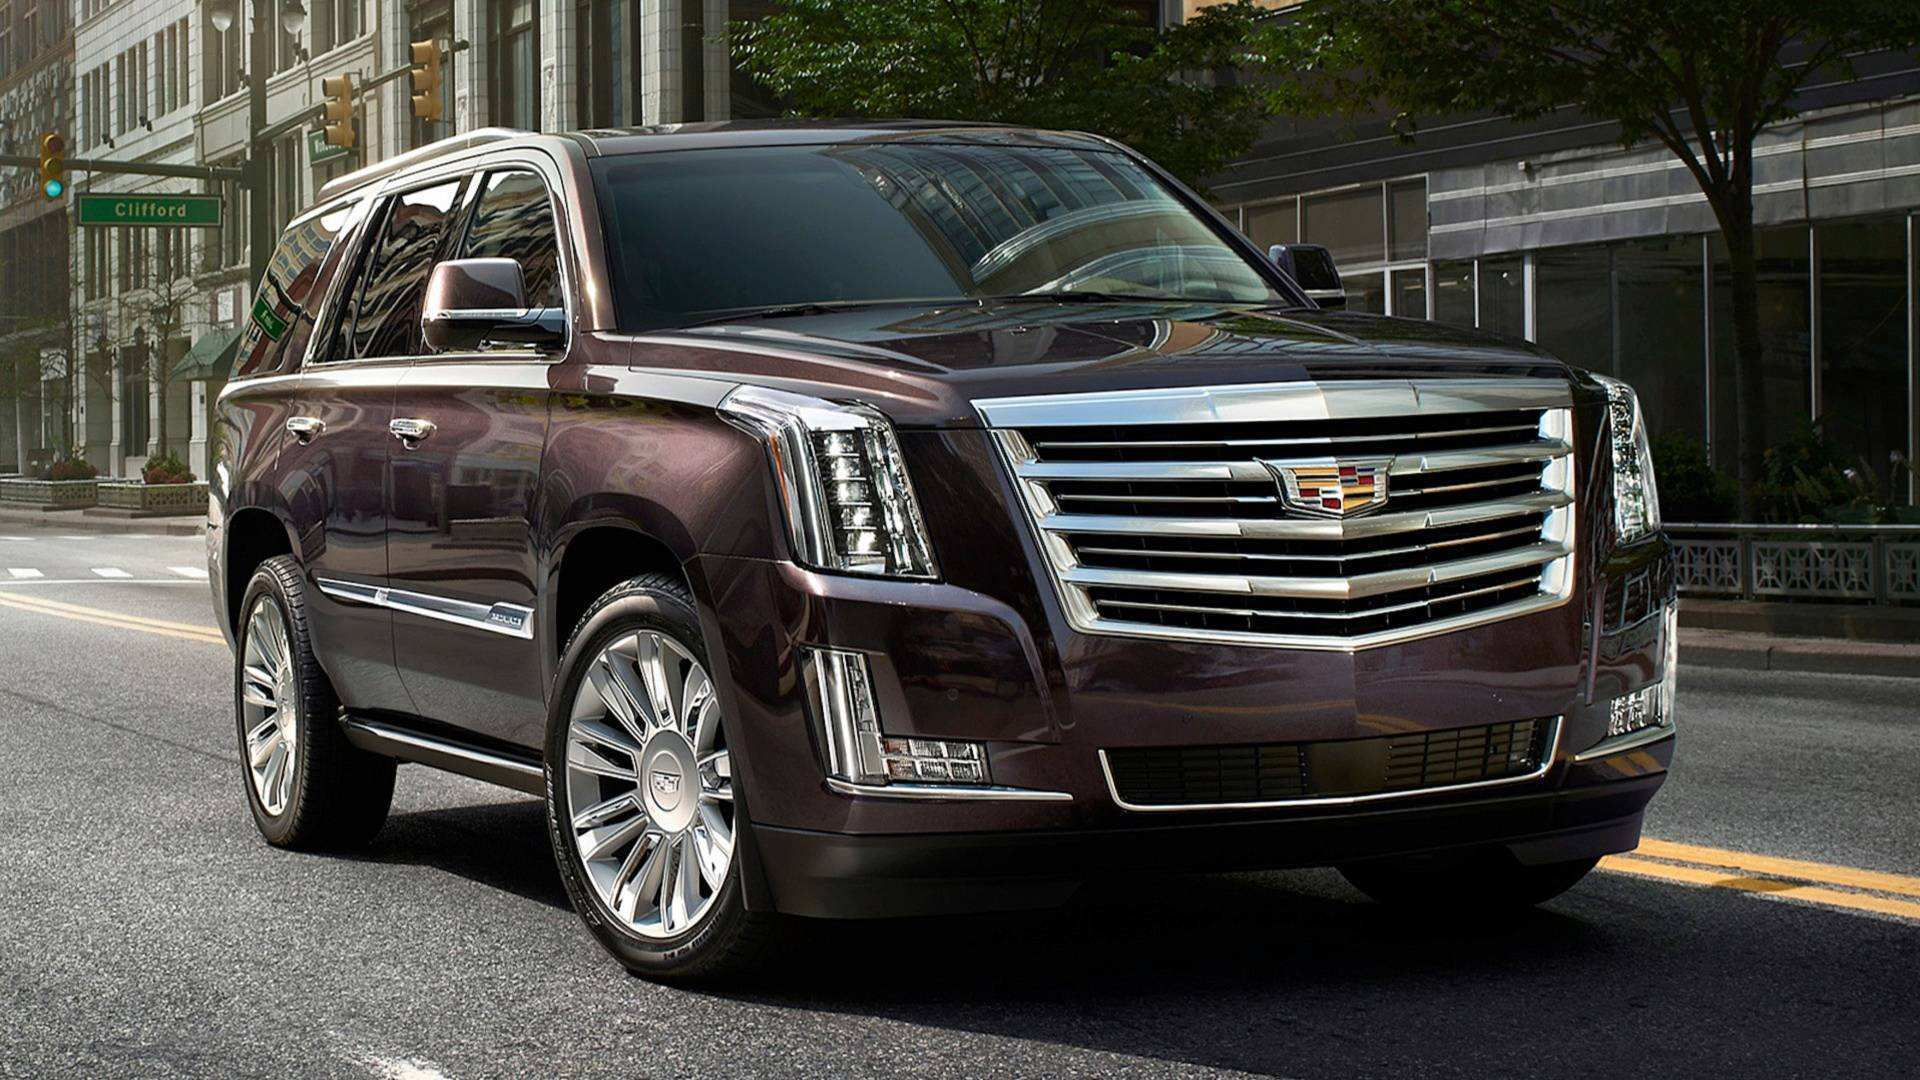 12 Gallery of 2020 Cadillac Escalade Body Style Change Performance and New Engine by 2020 Cadillac Escalade Body Style Change